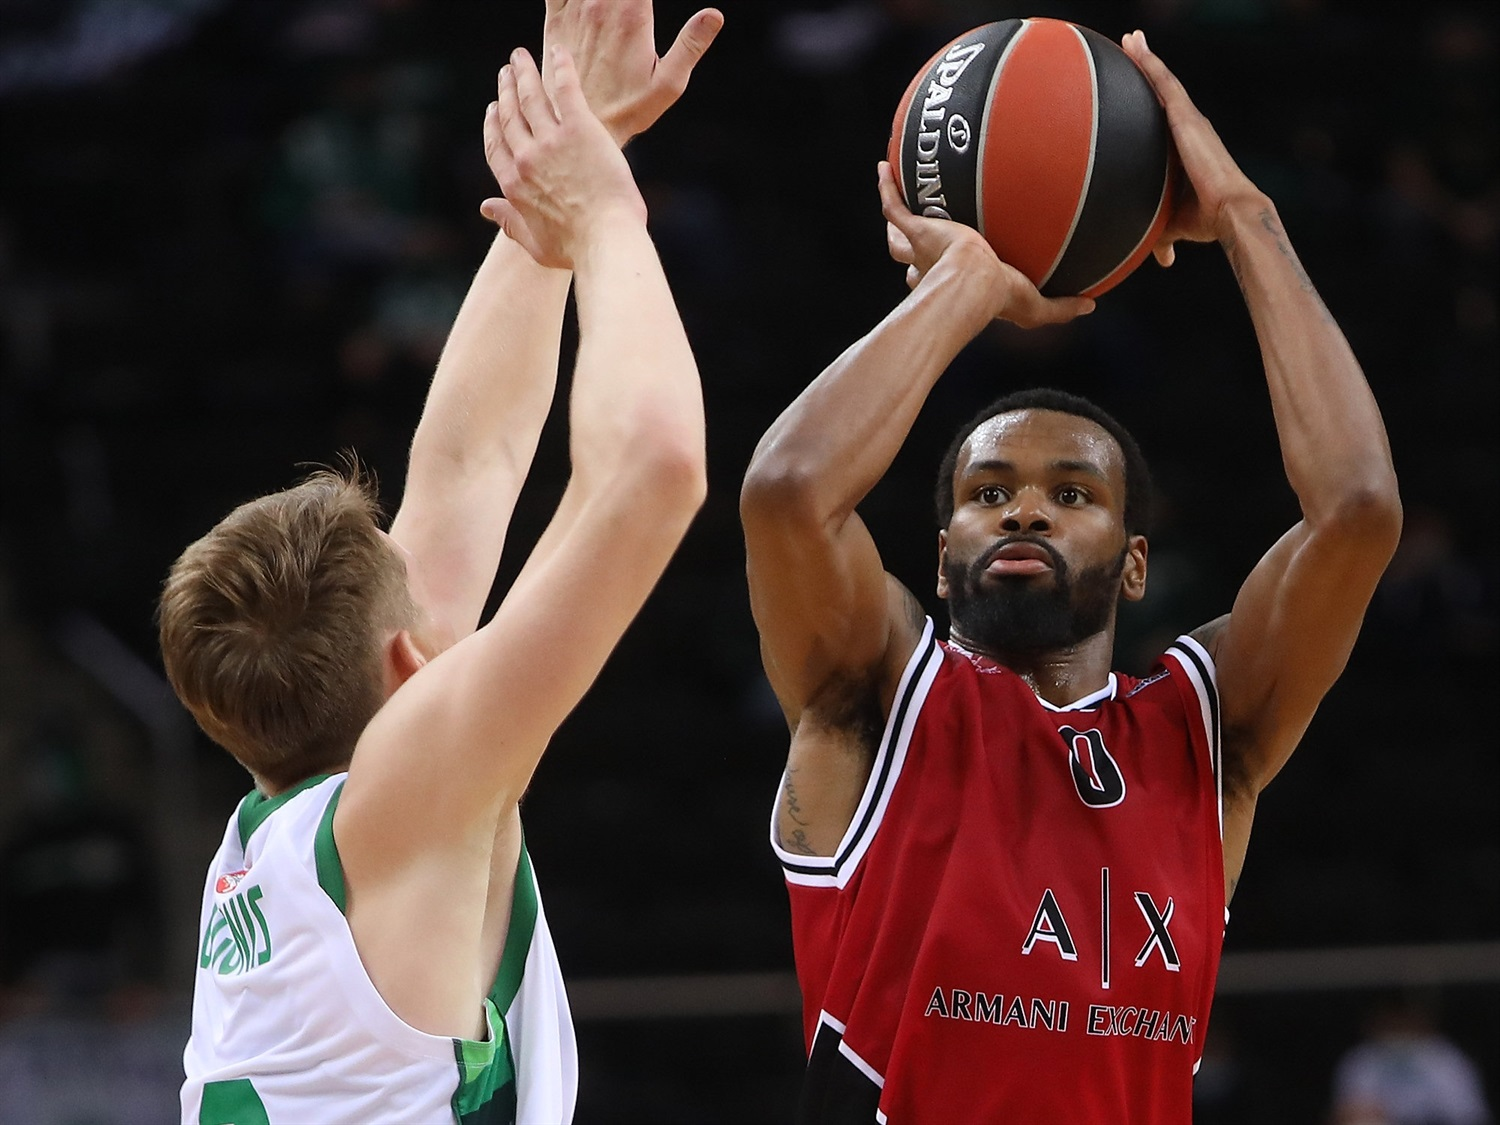 Kevin Punter - AX Armani Exchange Milan - Preseason Tour Kaunas 2020 - EB20